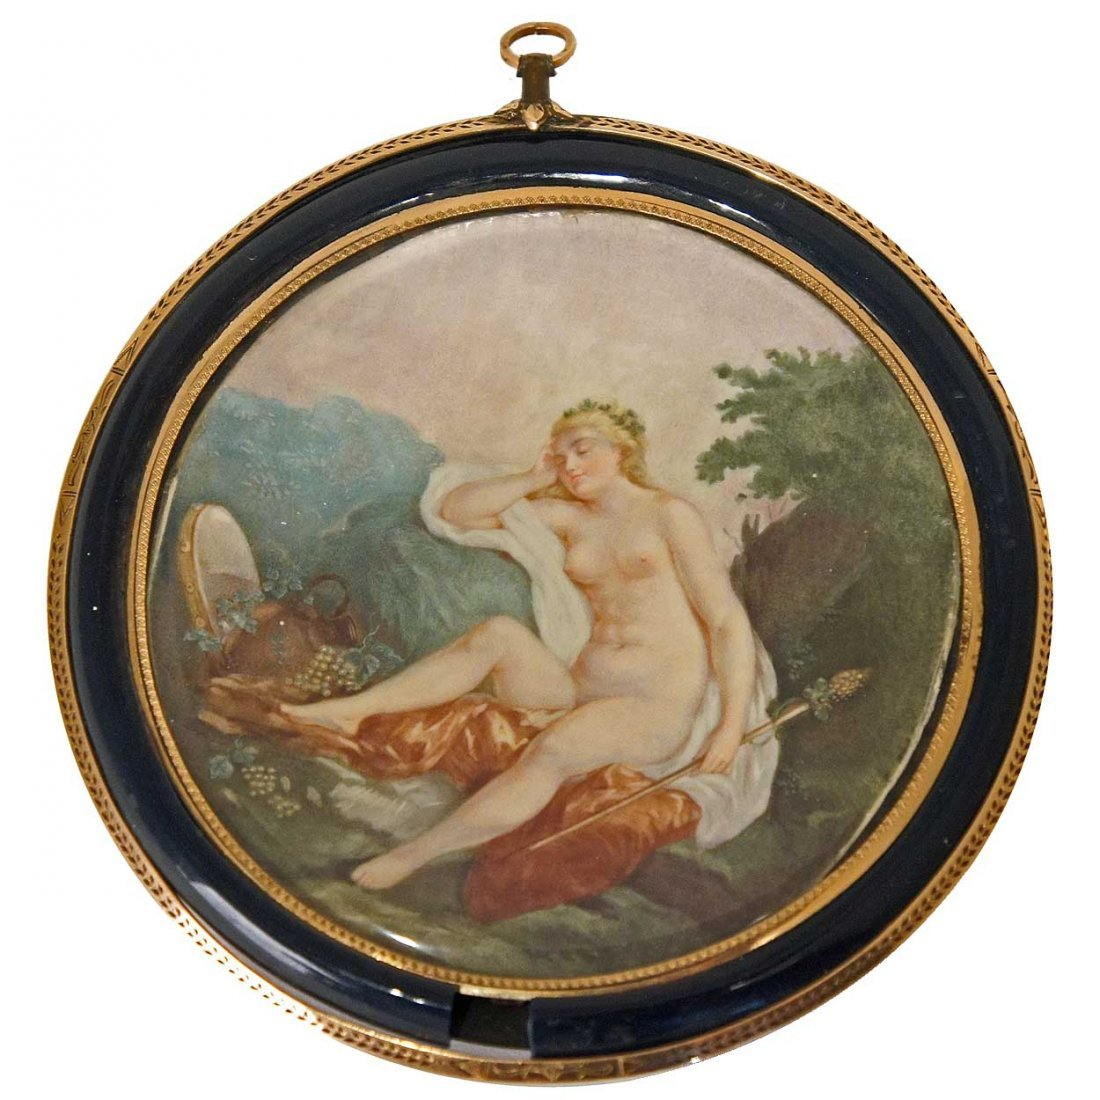 571: A French Louis XVI Style Miniature Cabinet Paintin